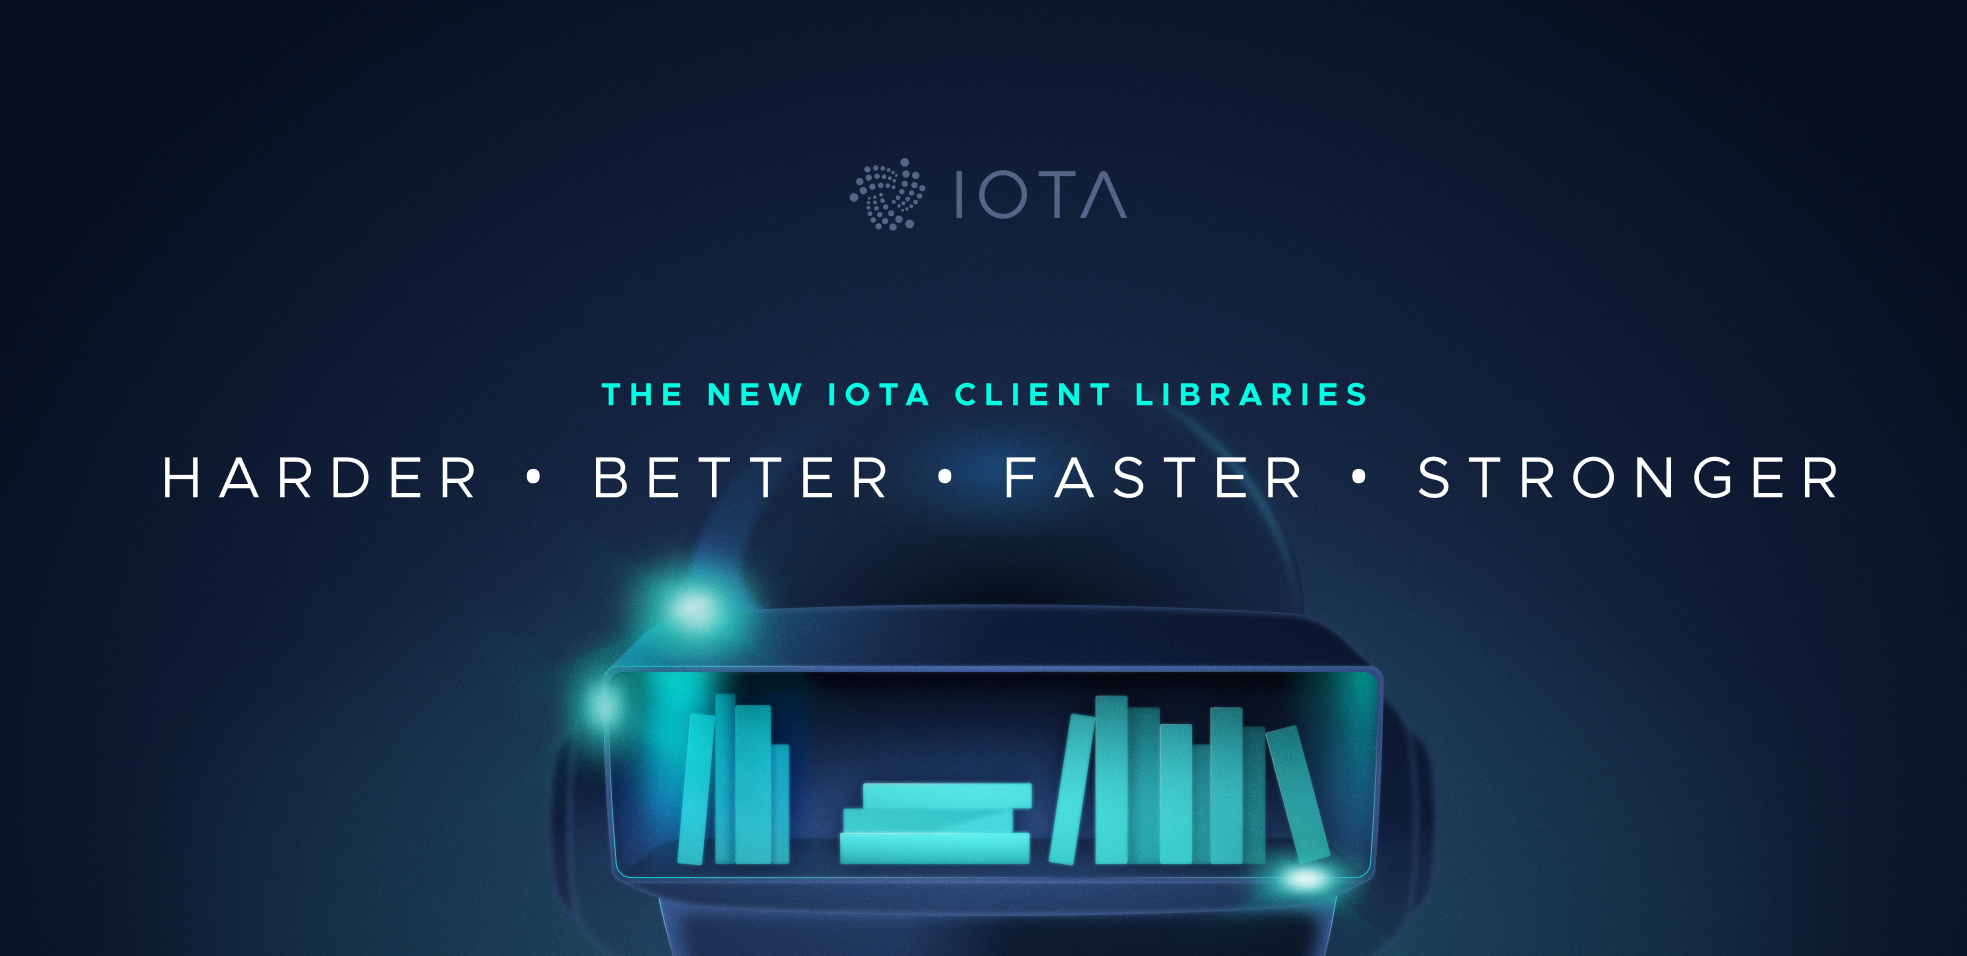 The new IOTA Client Libraries: Harder, Better, Faster, Stronger